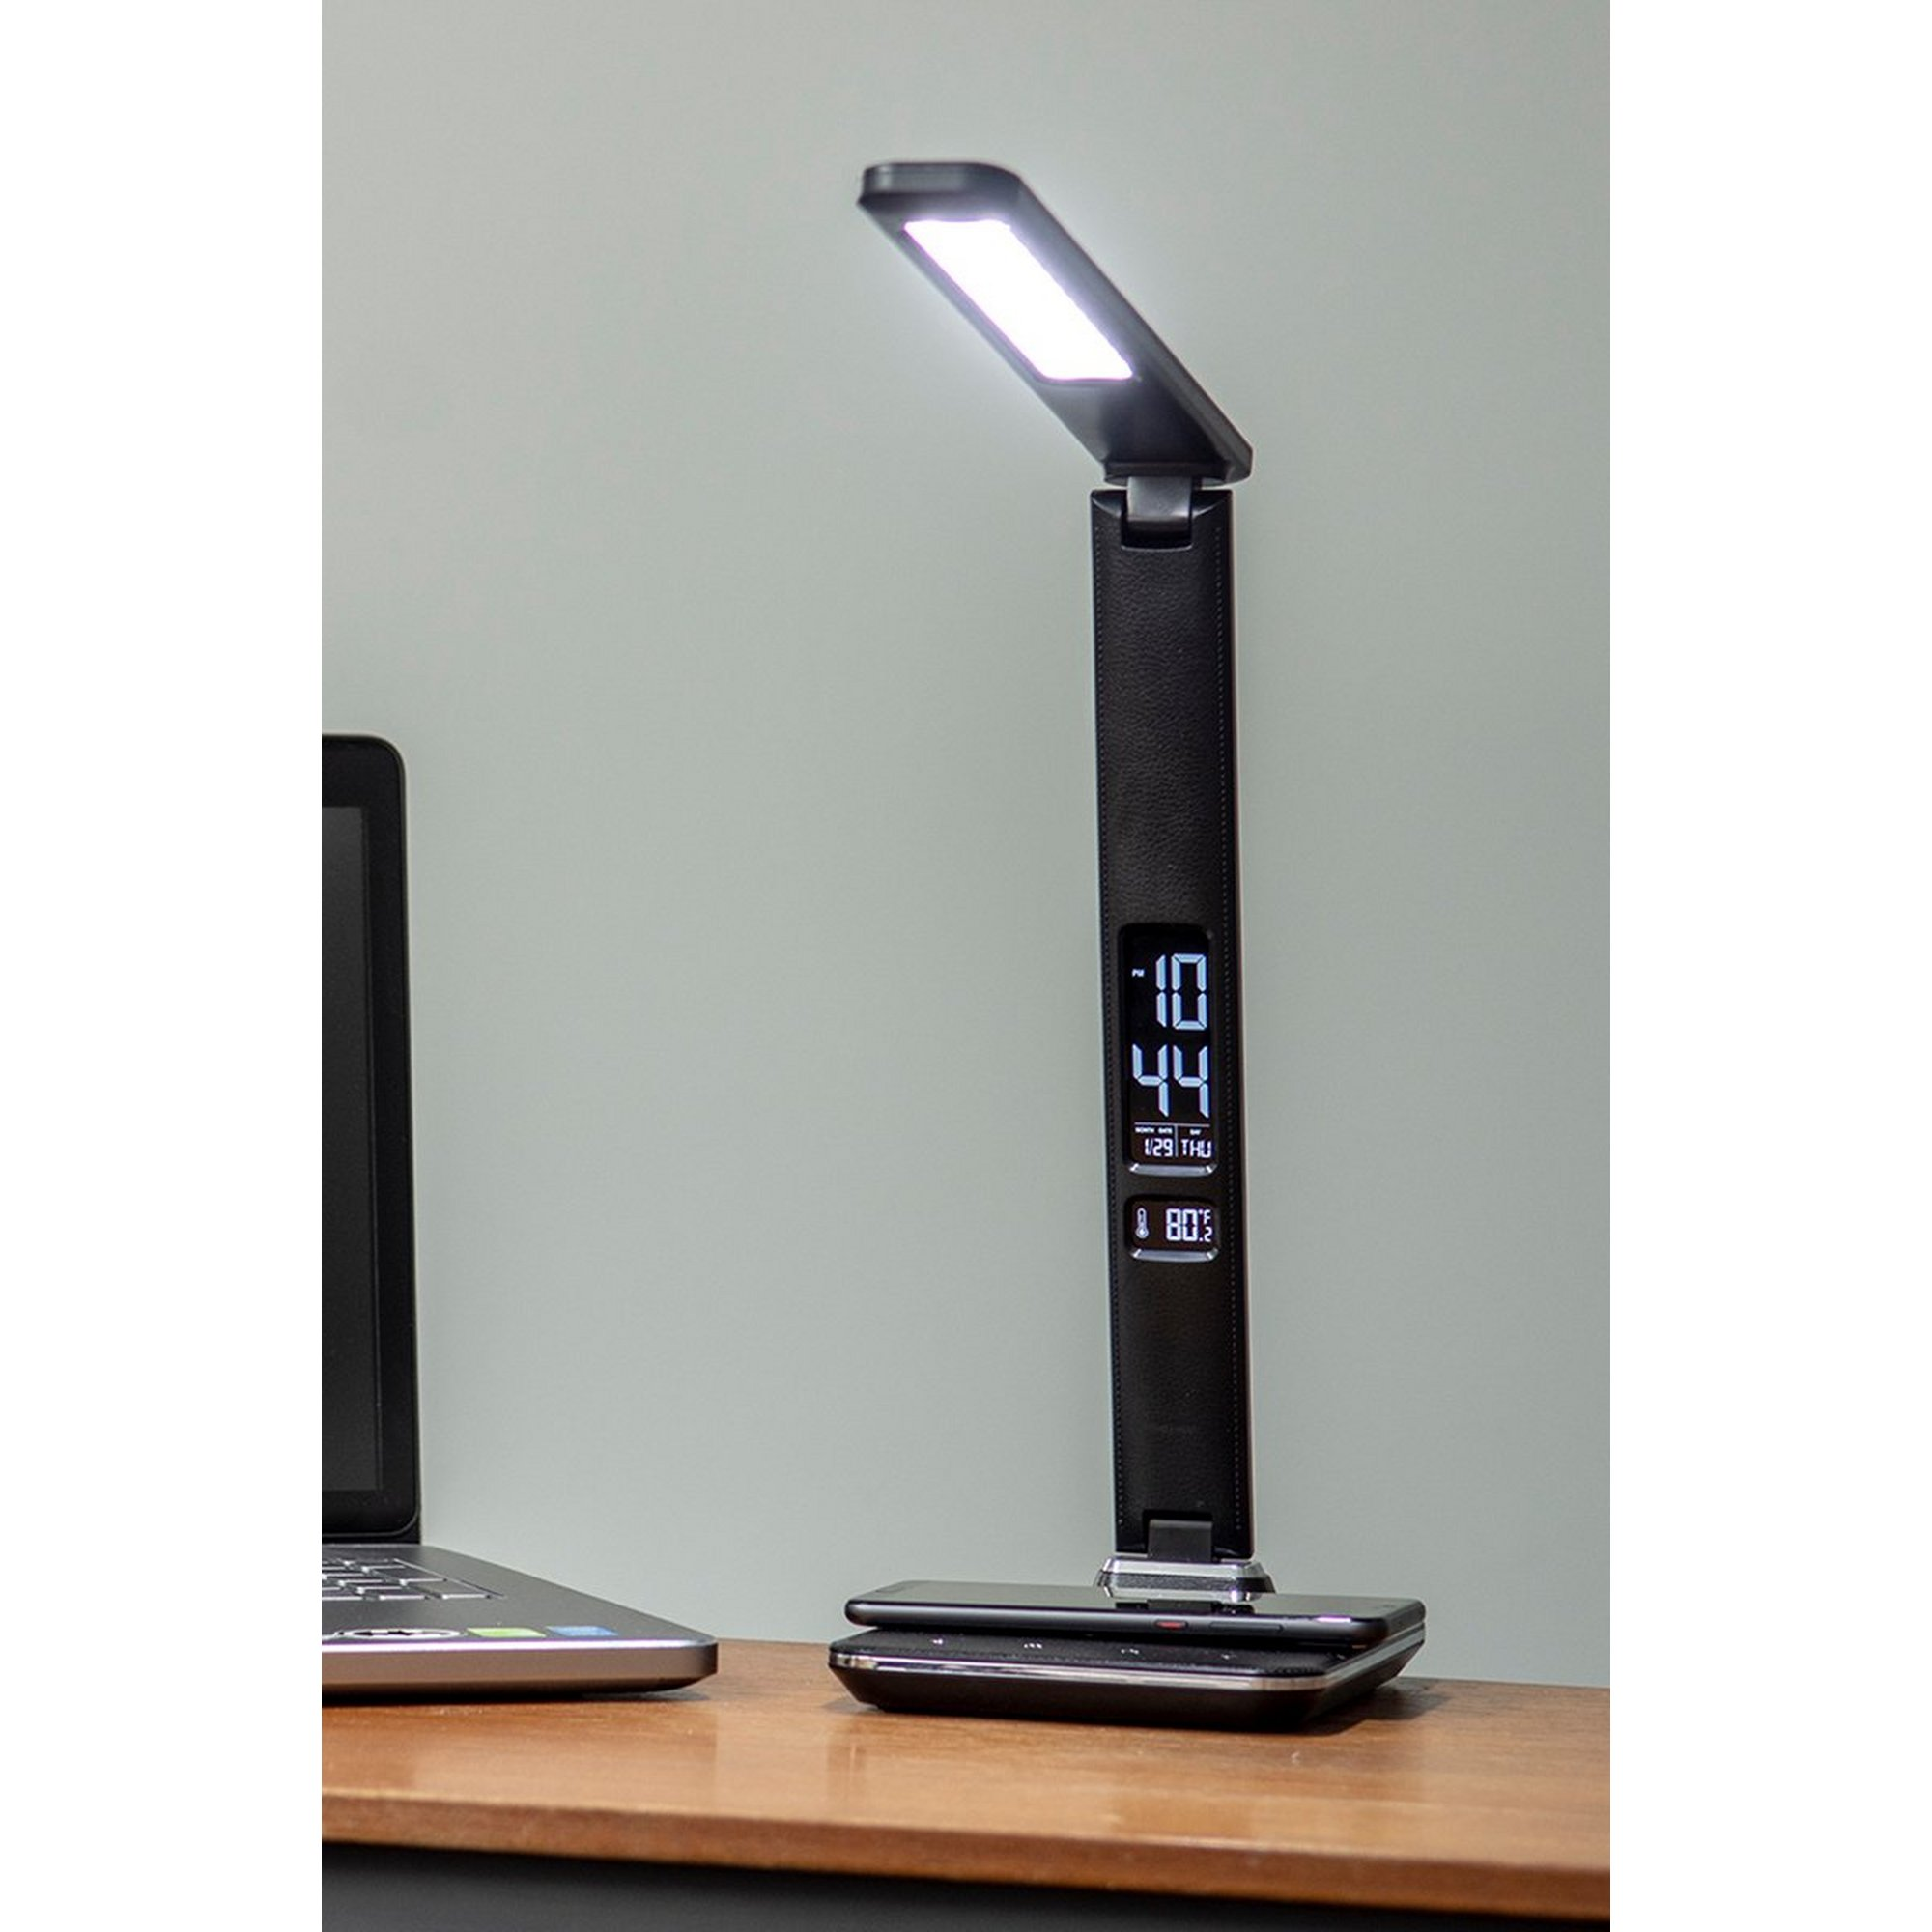 Image of Groov-e Ares Desk LED Lamp with Wireless Charging Pad and Clock